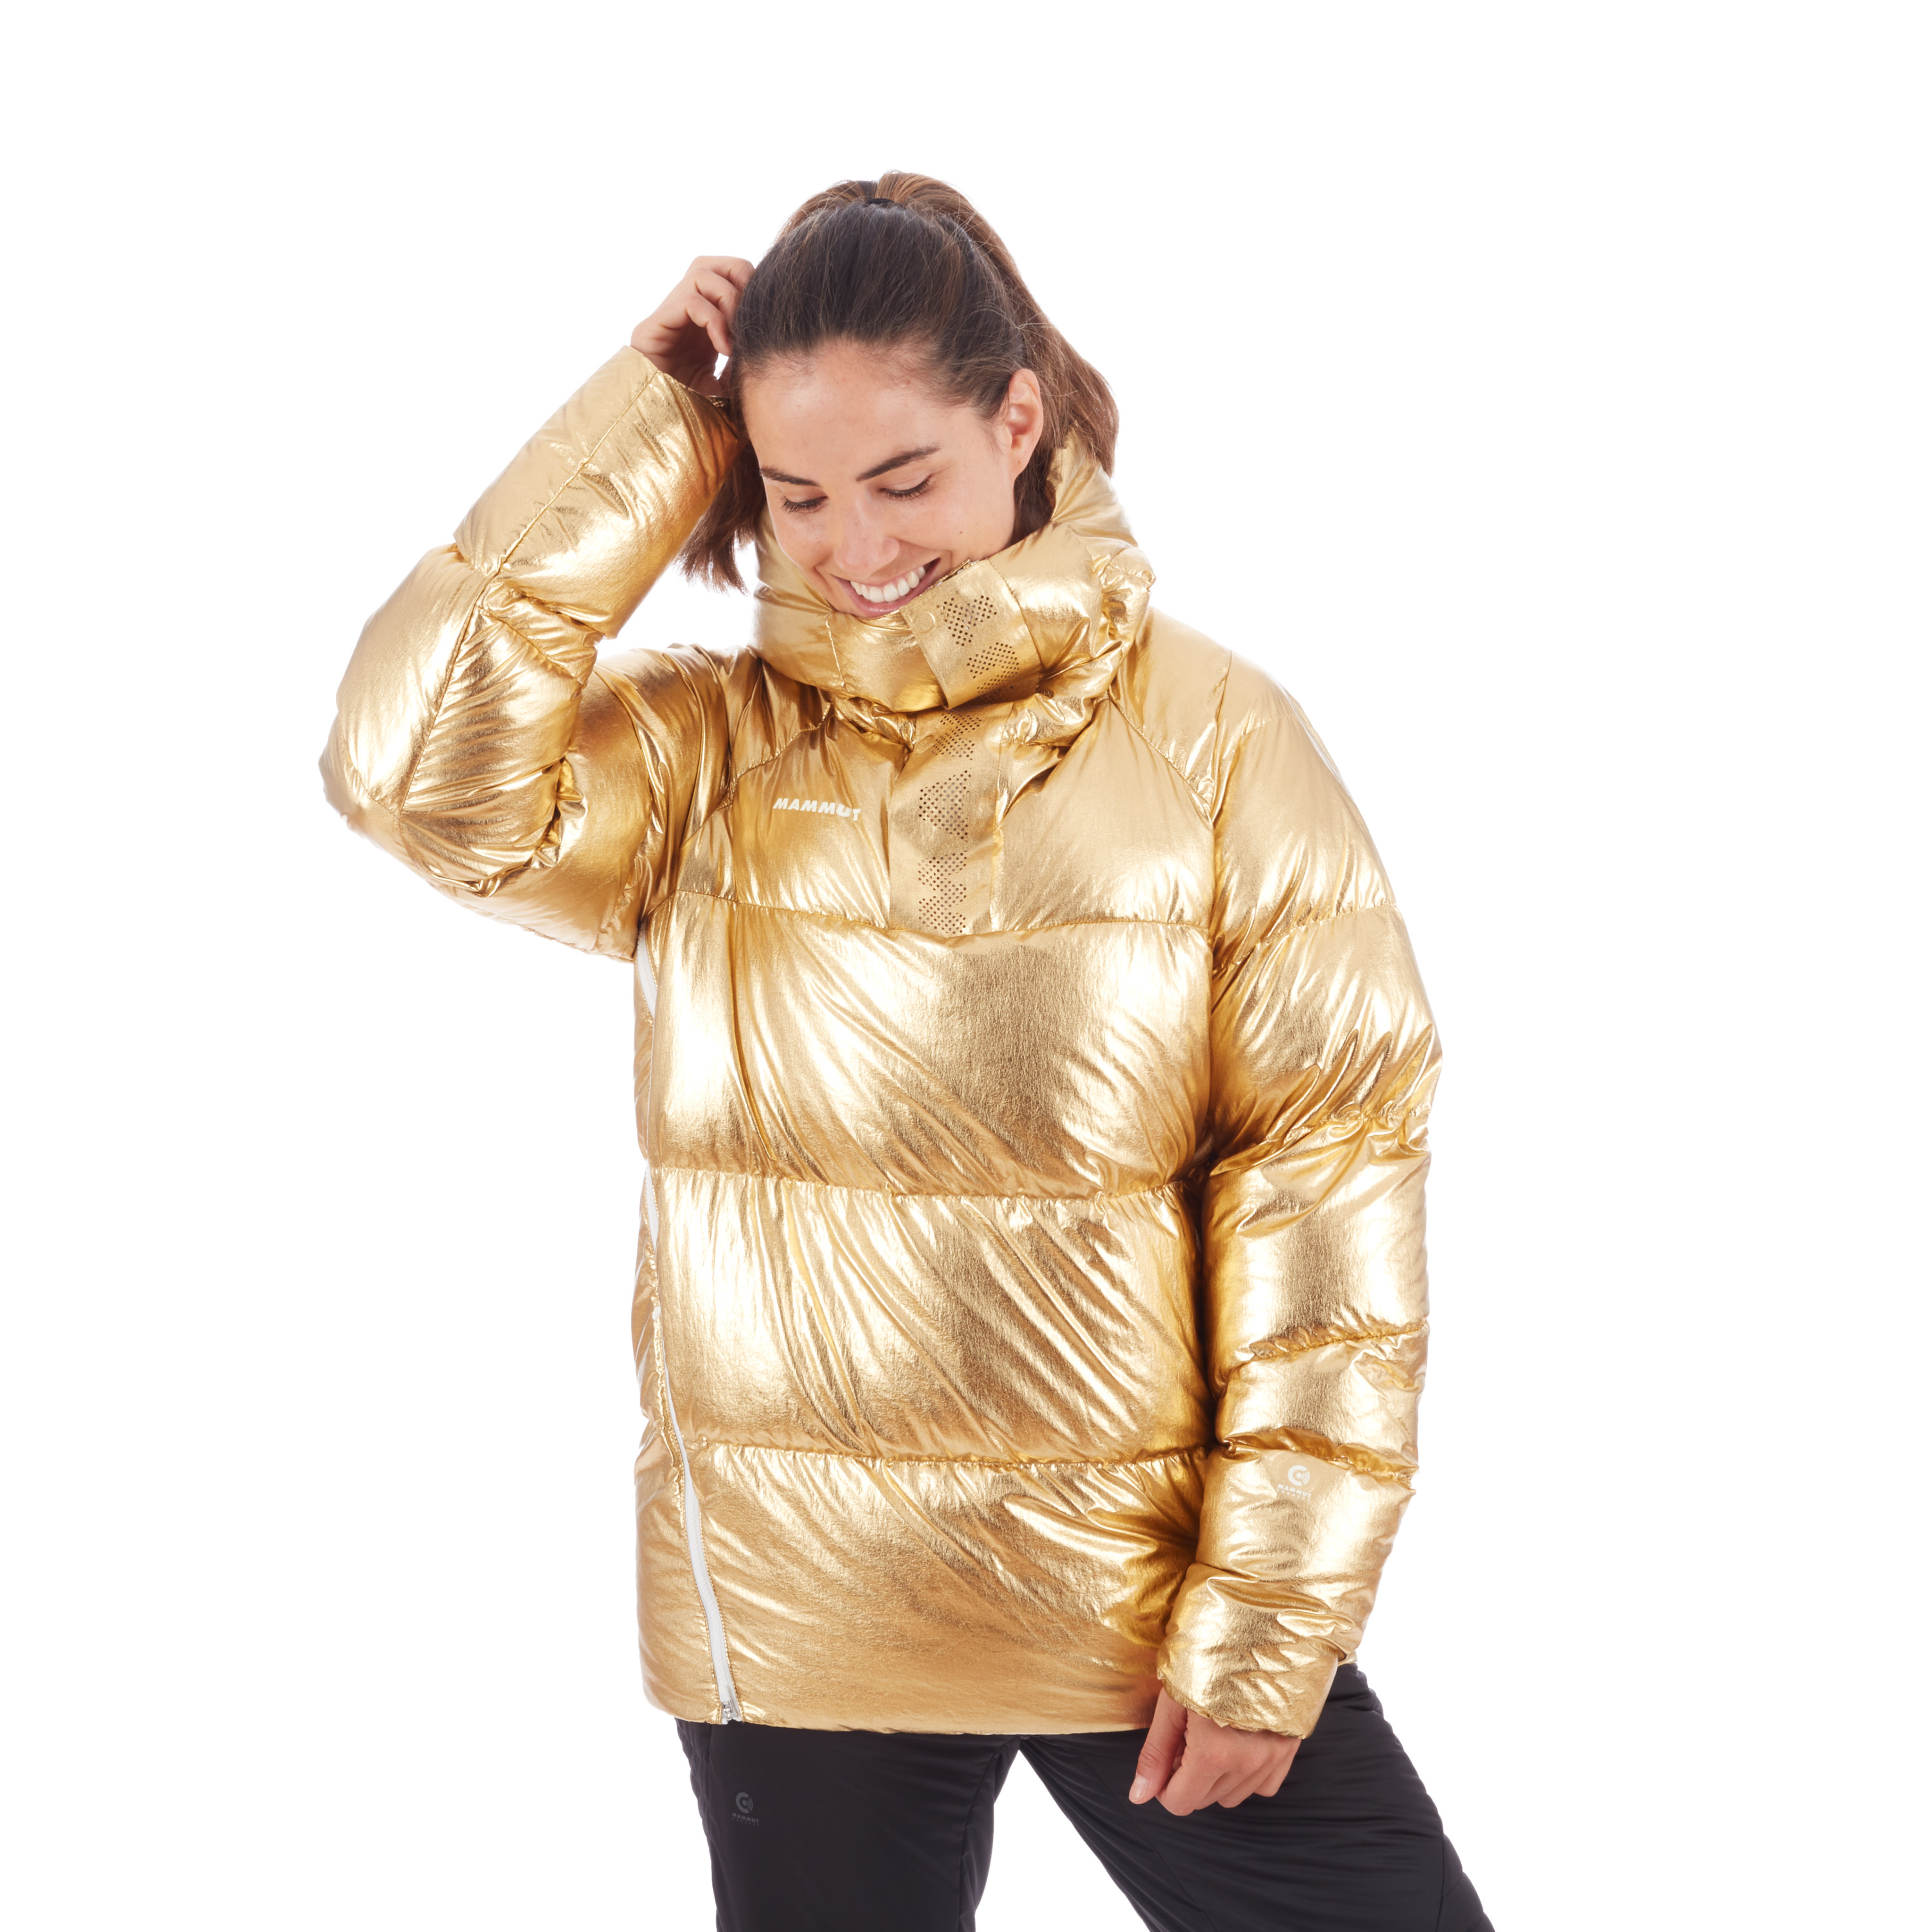 THE IN Anorak product image